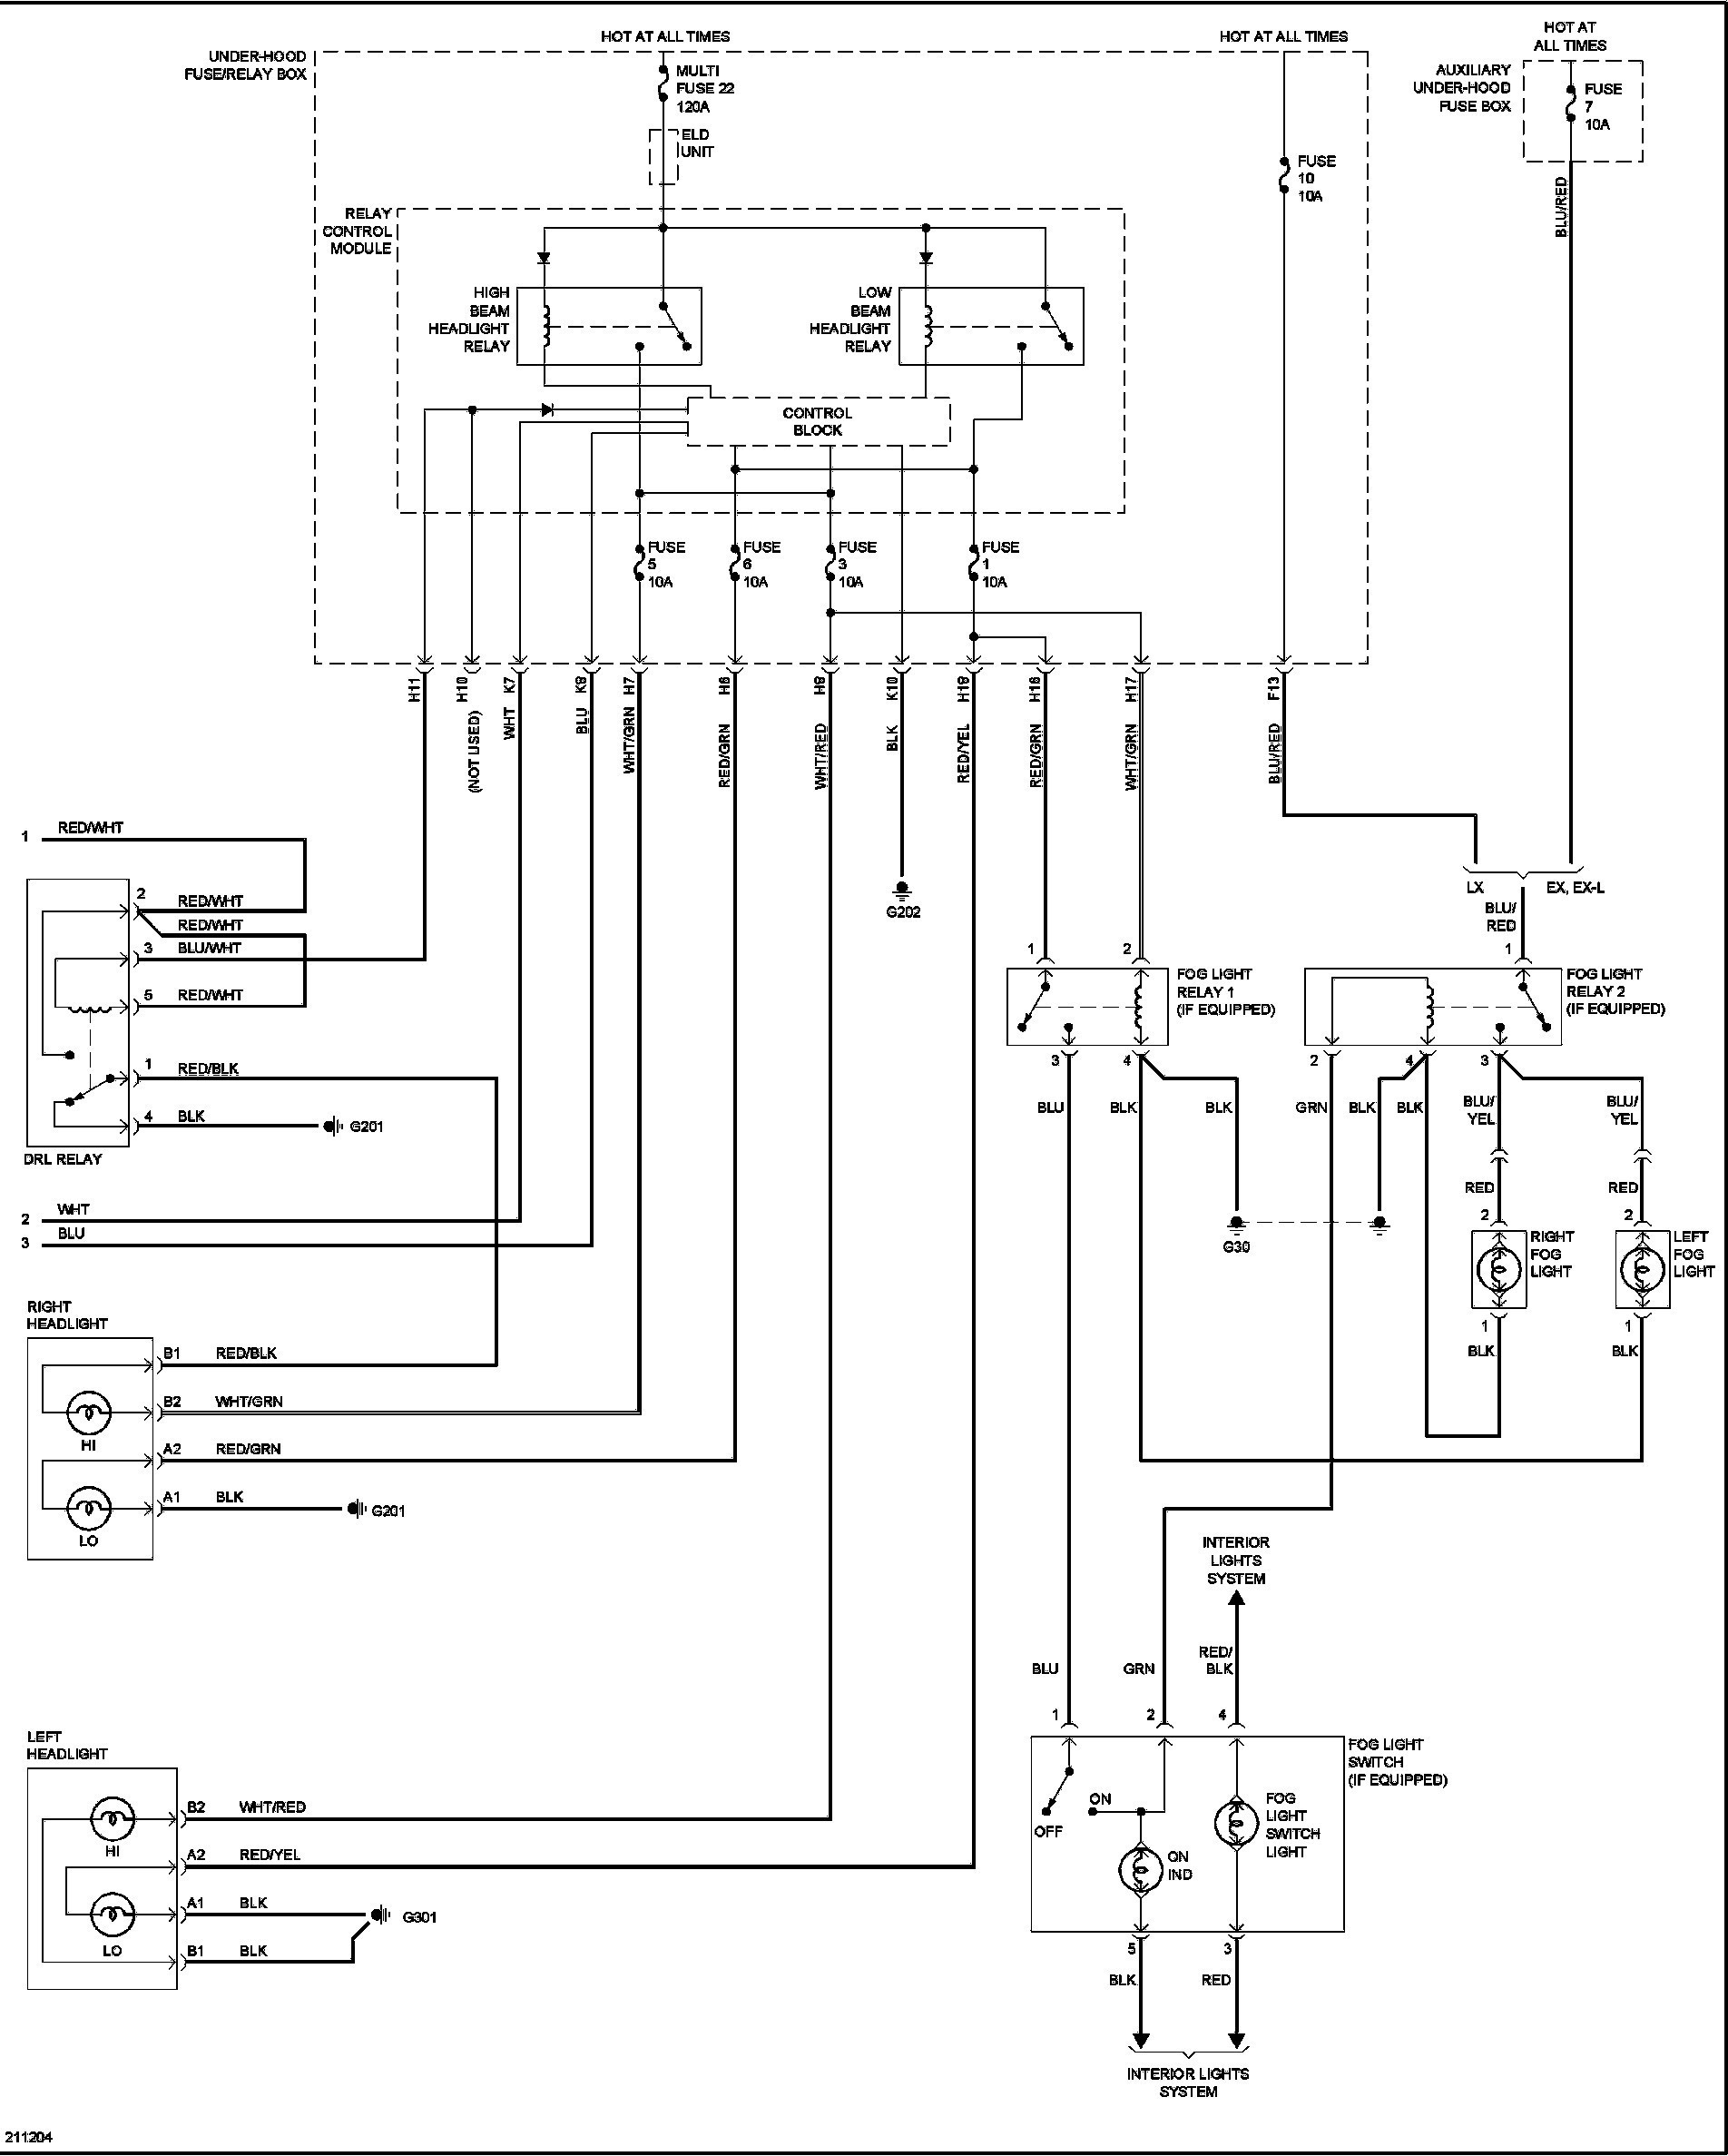 DIAGRAM] 2000 Odyssey Wiring Diagram FULL Version HD Quality Wiring Diagram  - DATABREAKERWIRING.ITCMOLARI.ITdatabreakerwiring.itcmolari.it